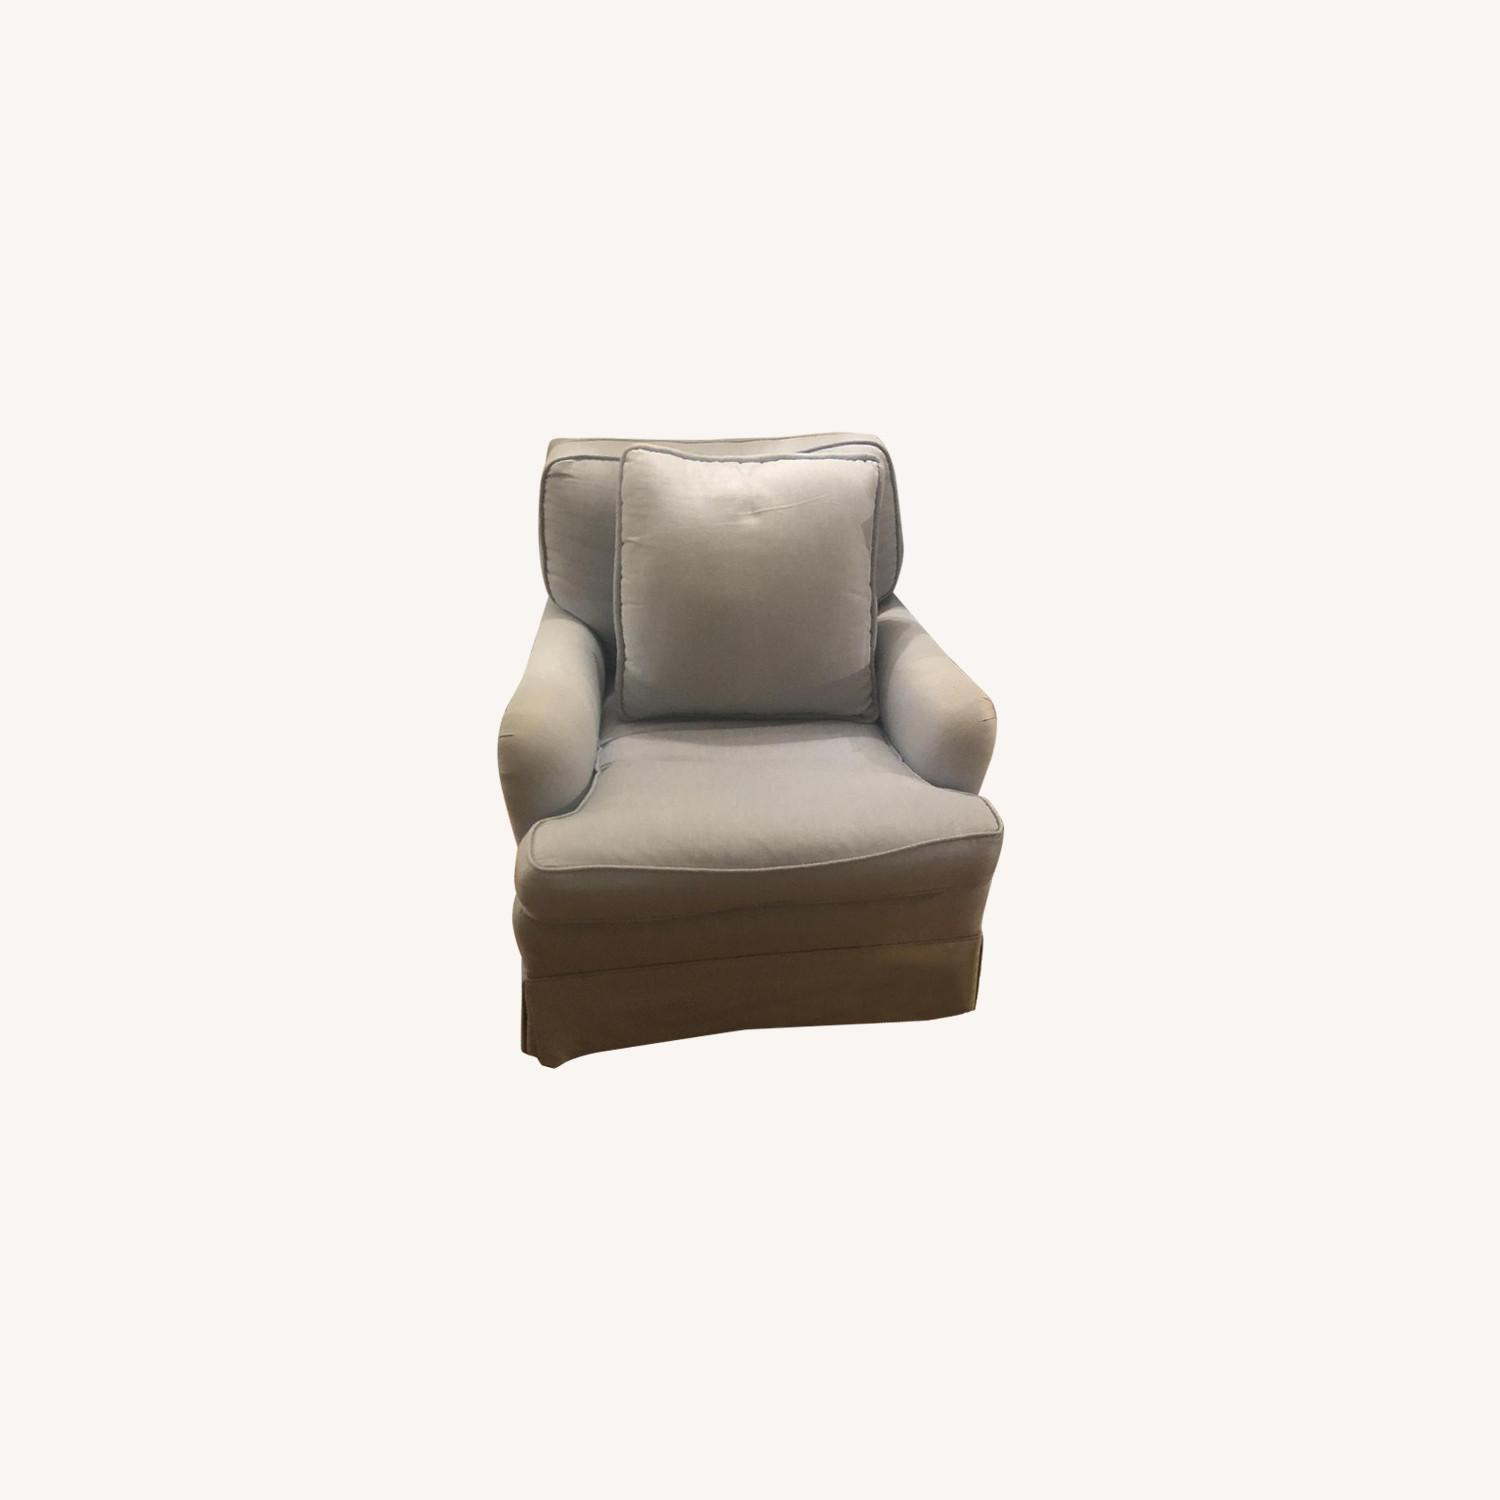 Taylor Made Club Chair - image-0